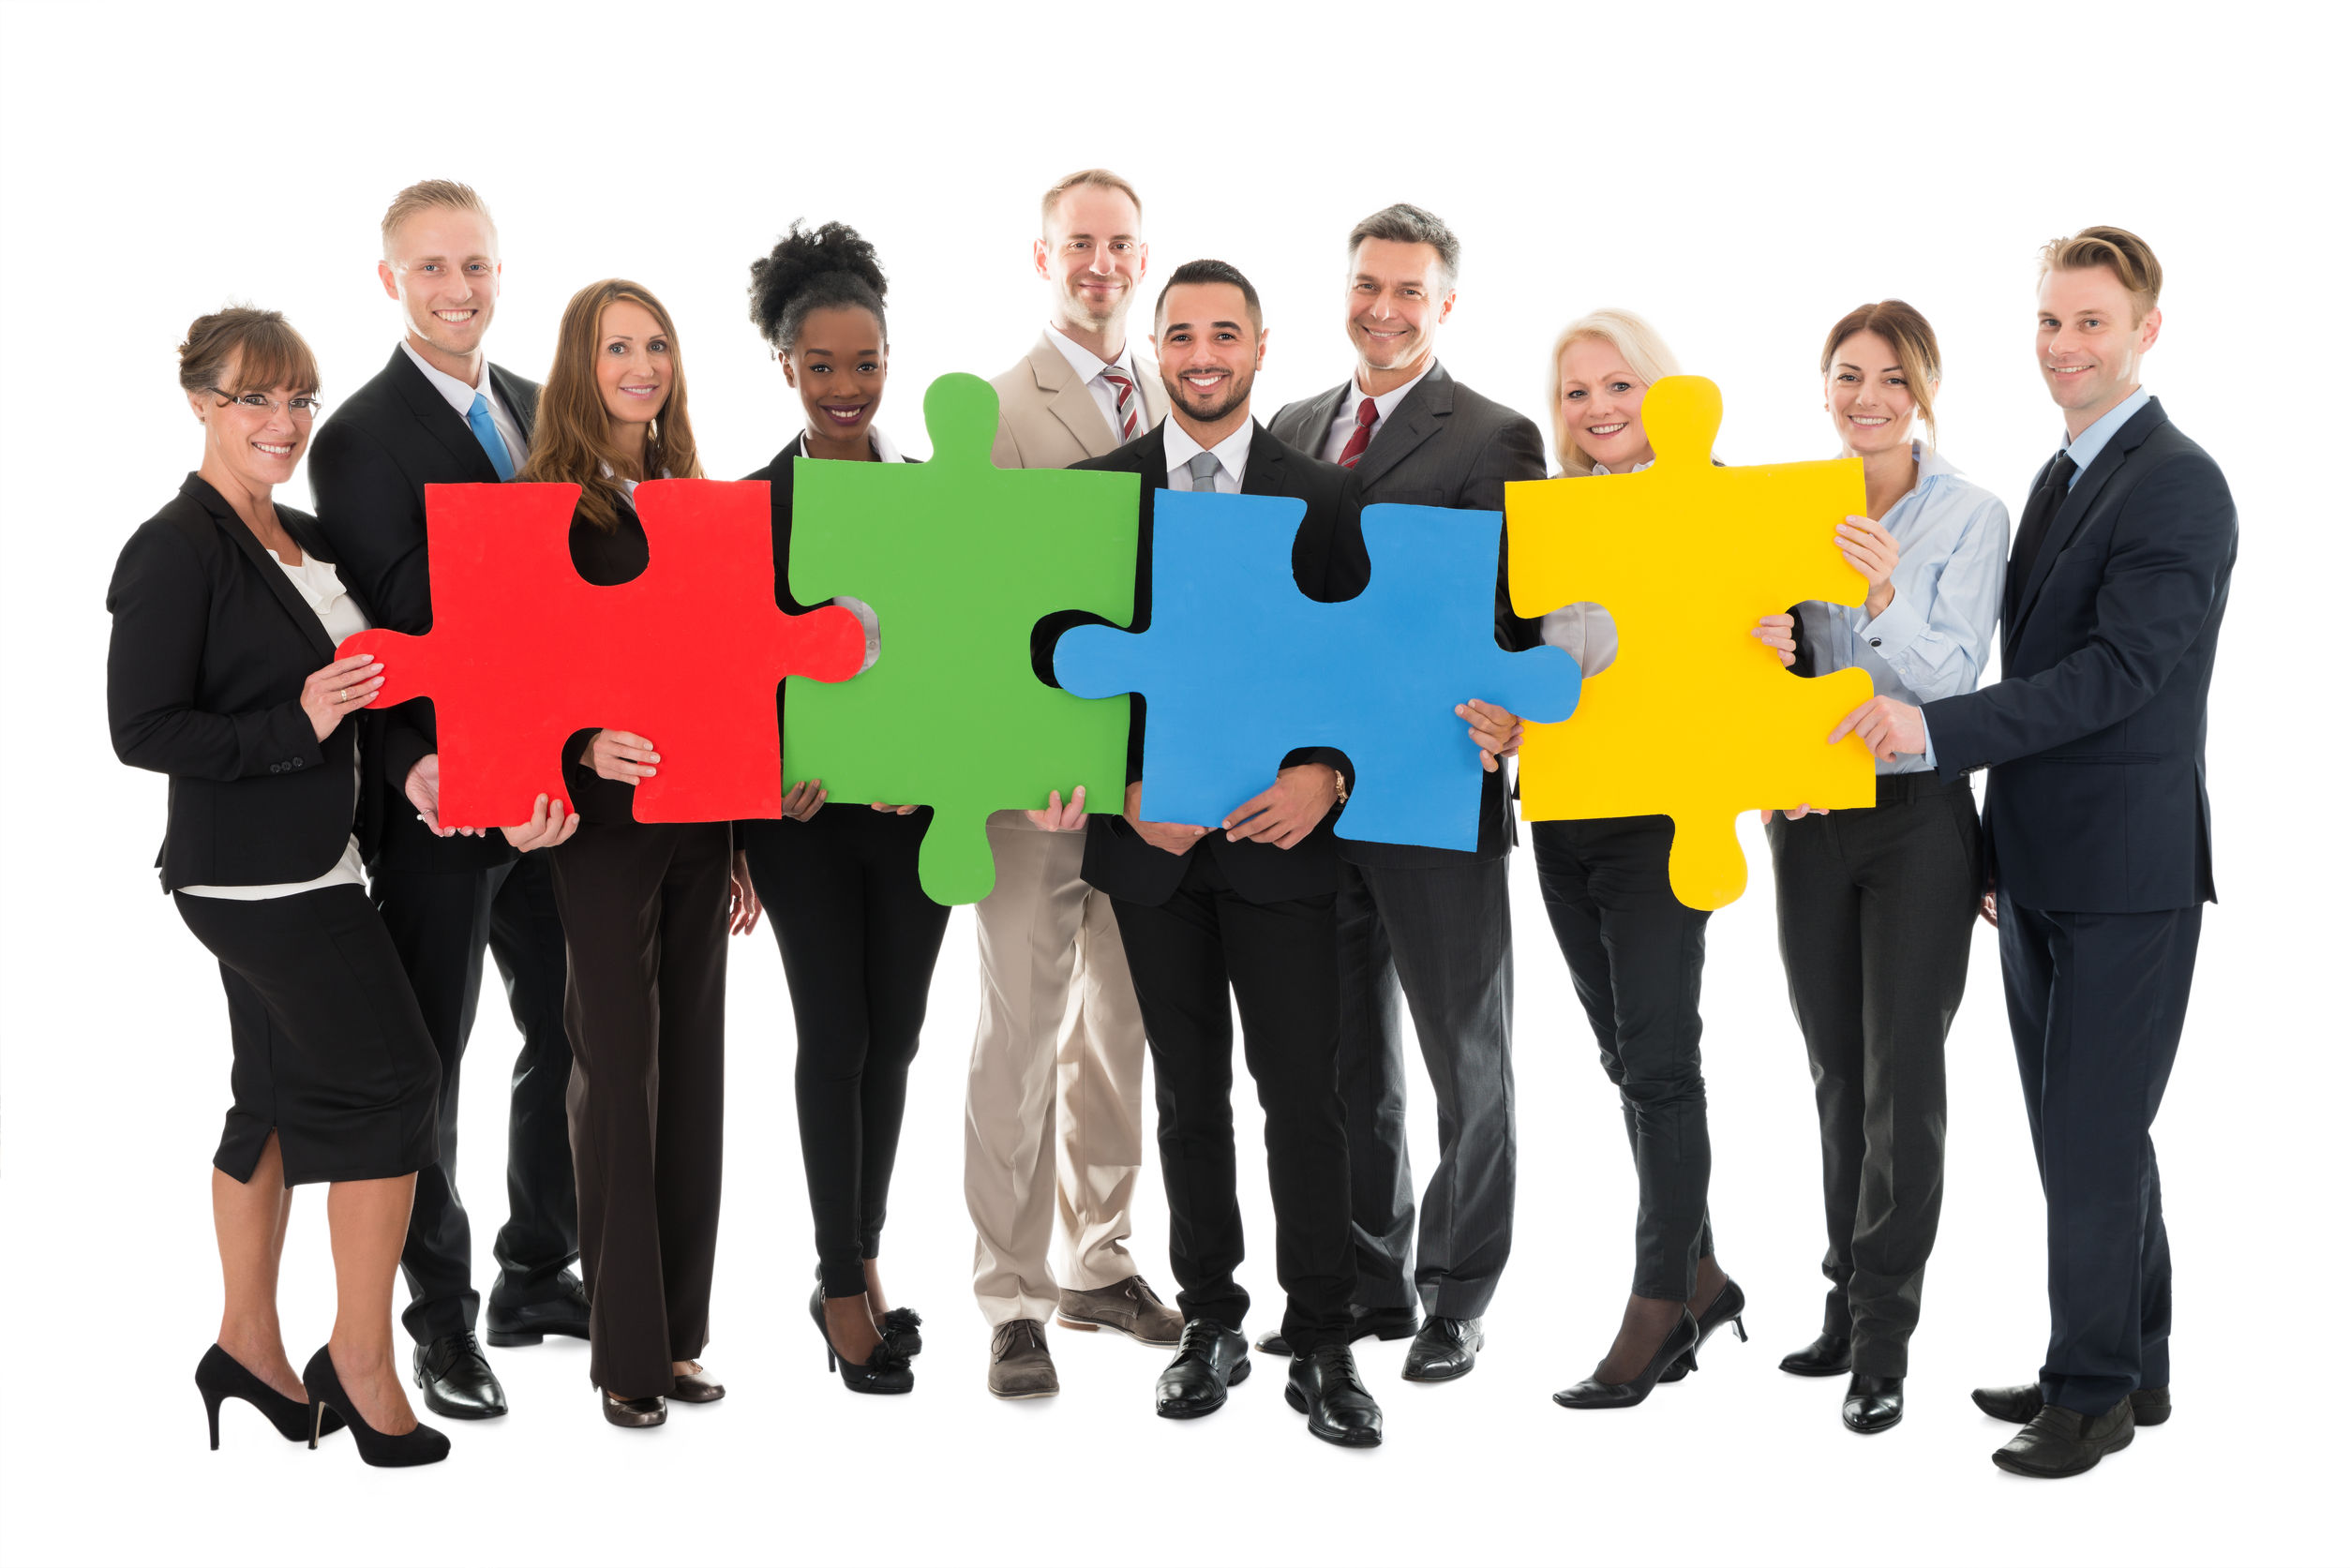 50244323 - full length portrait of happy business team holding jigsaw pieces against white background